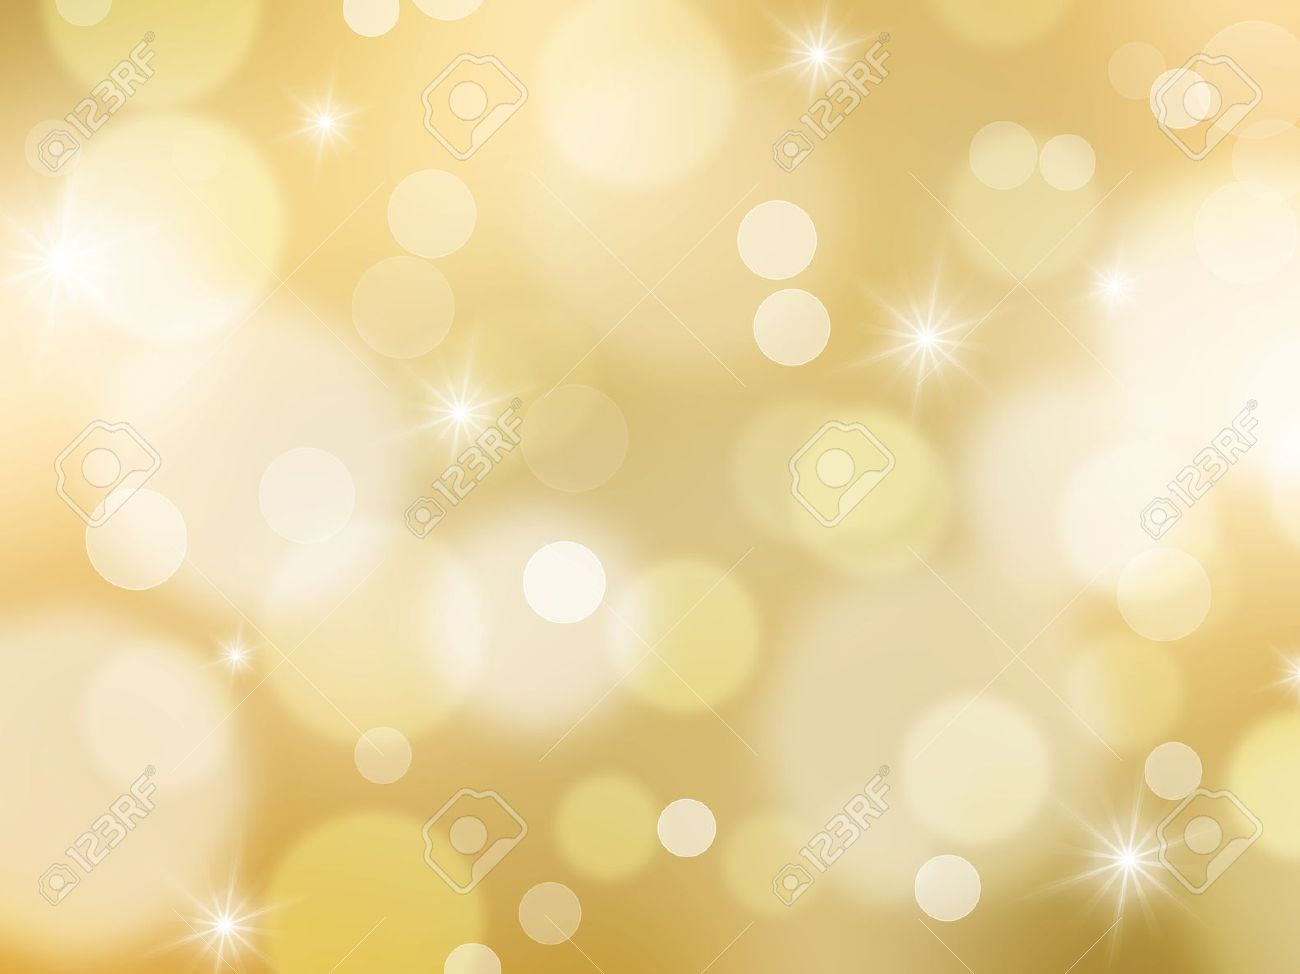 Light Gold Background 1300x974